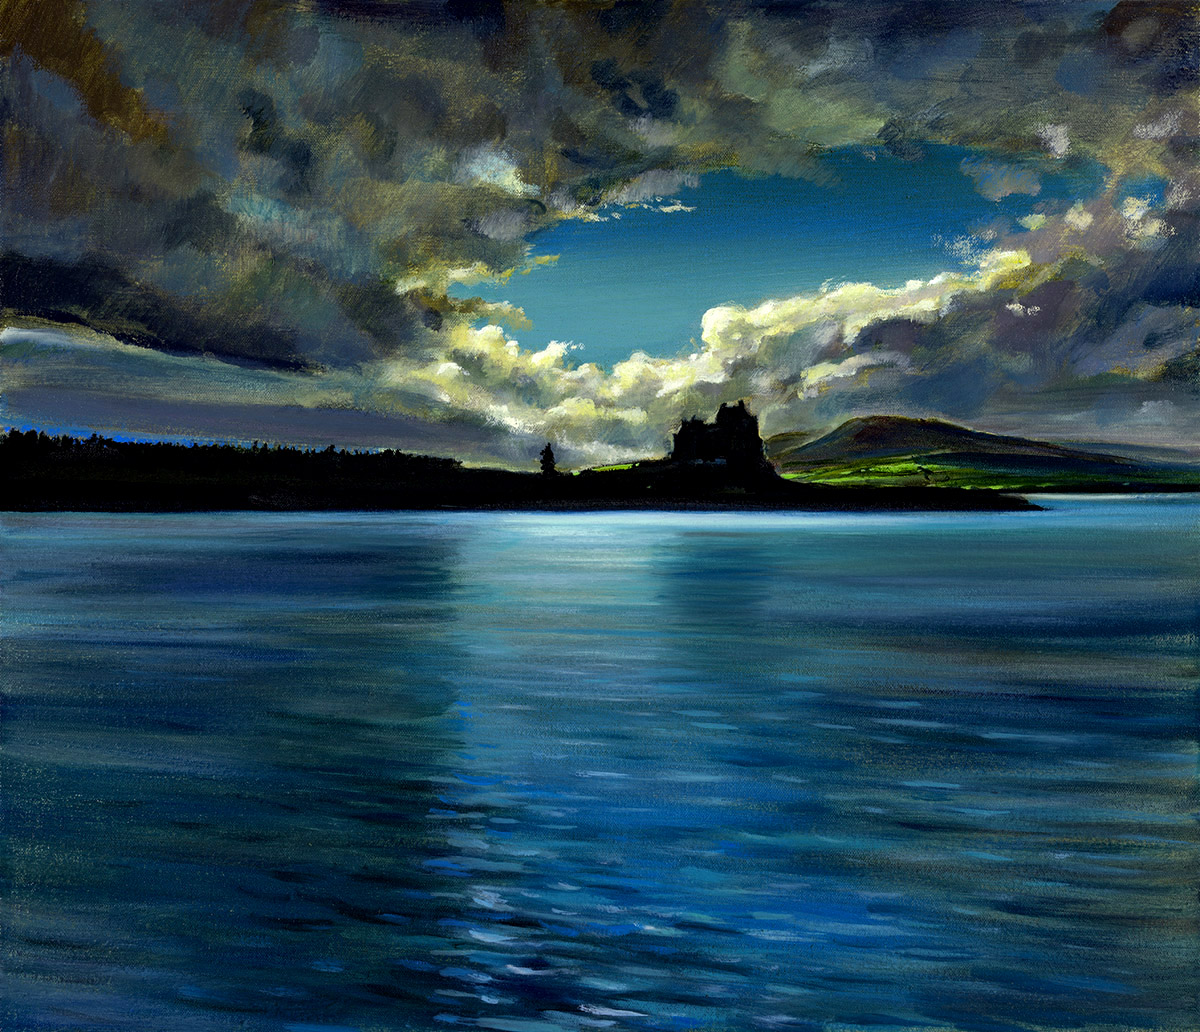 Nichol Wheatley: Duart Castle, the dowry of the Lord of the Isles, Isle of Mull